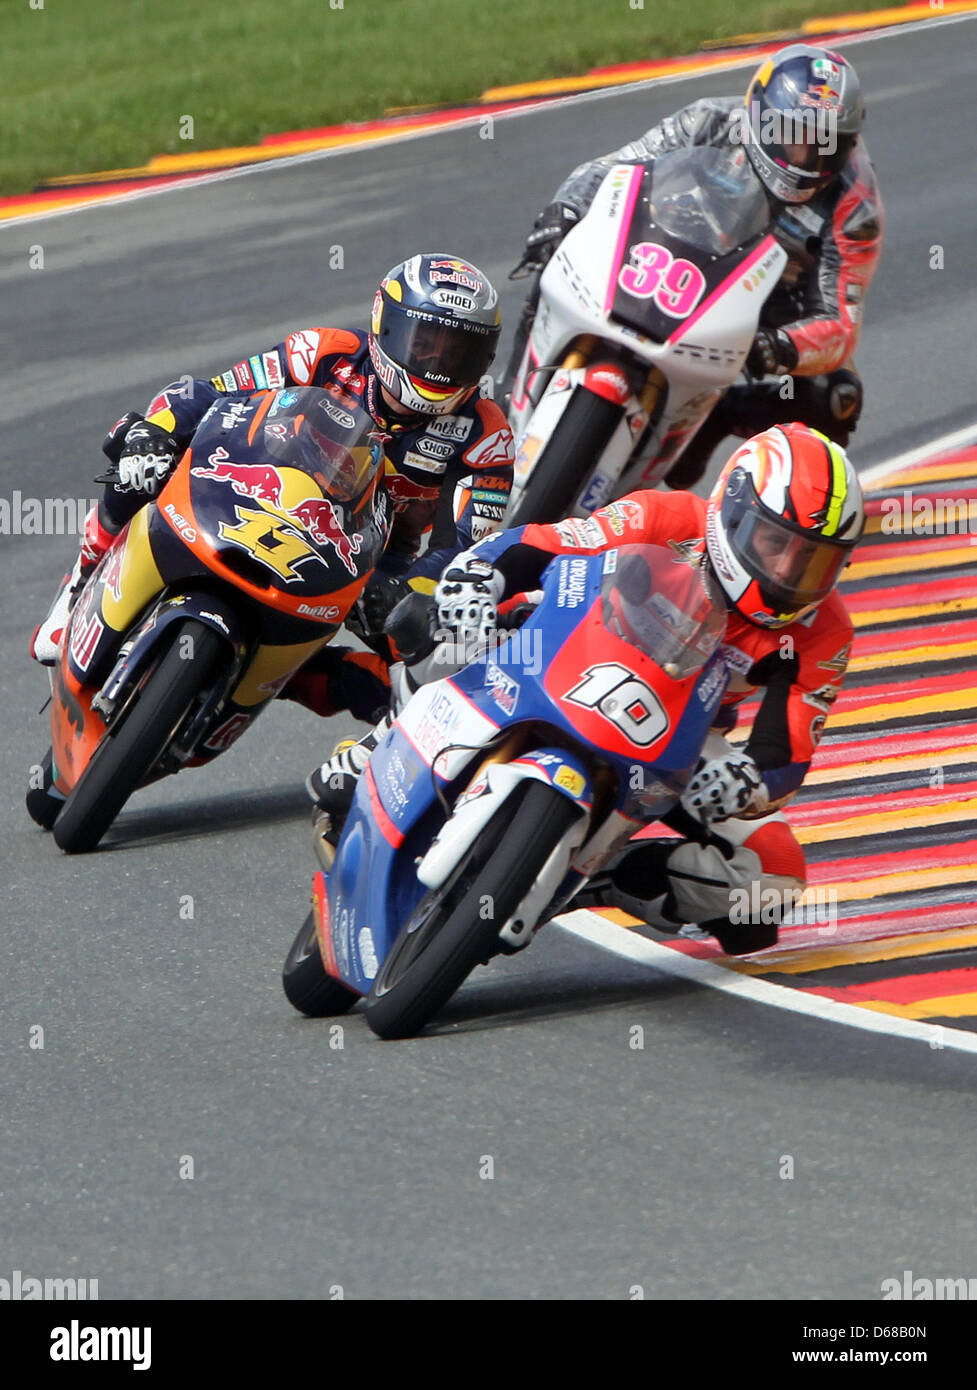 French MotoGP rider Alexis Masbou of Team Caretta Technology leads the field ahead of German rider Sandro Cortese - Stock Image